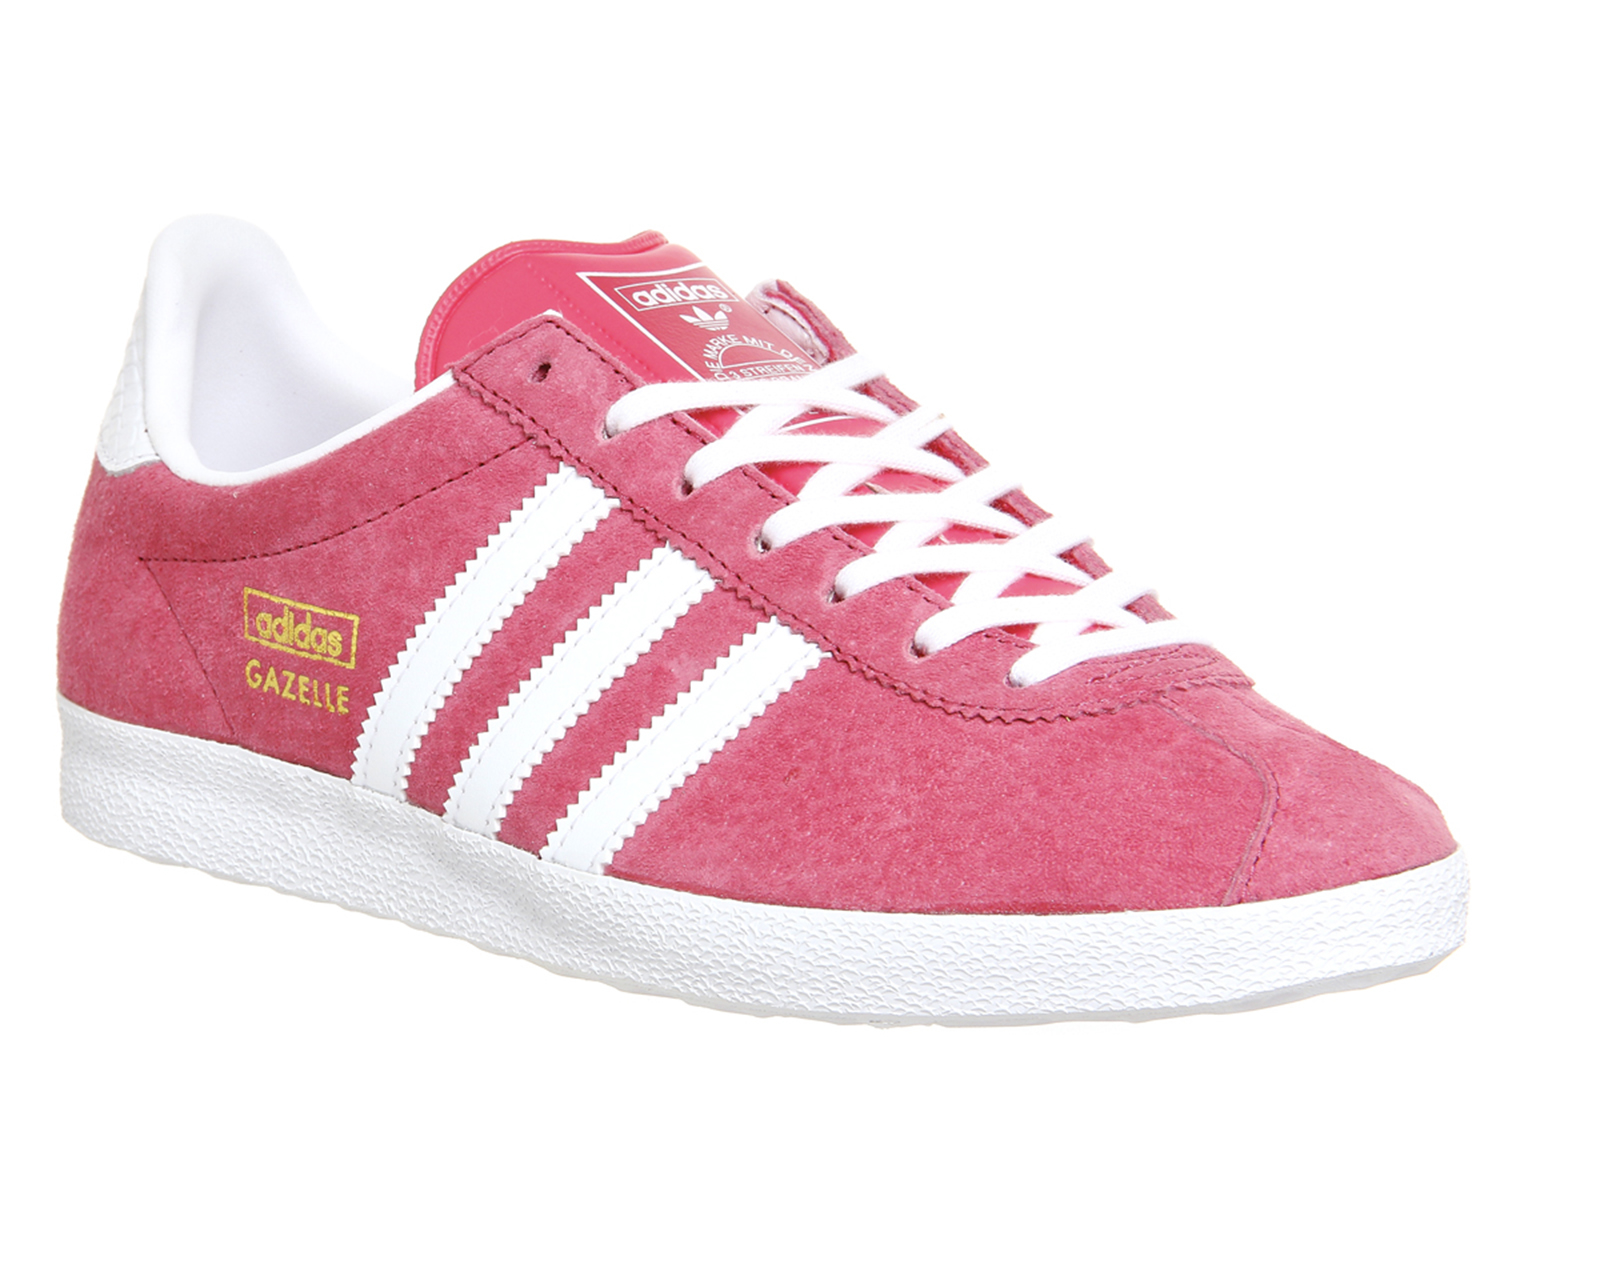 newest 05814 1e37f Lyst - adidas Originals Gazelle Og Suede Sneakers in Pink